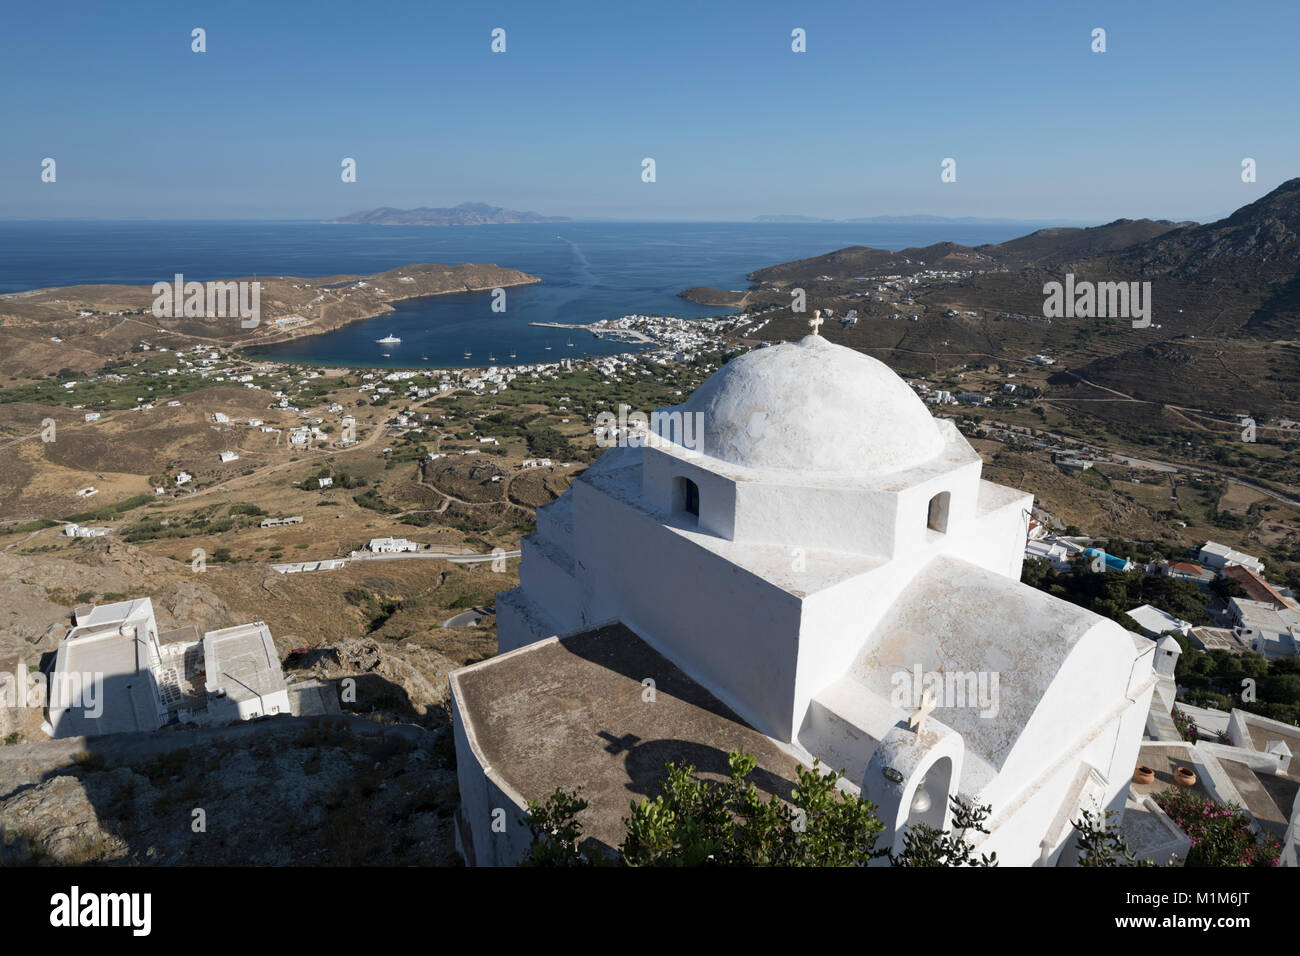 View over Livadi Bay and white Greek Orthodox church from top of Pano Chora, Serifos, Cyclades, Aegean Sea, Greek - Stock Image